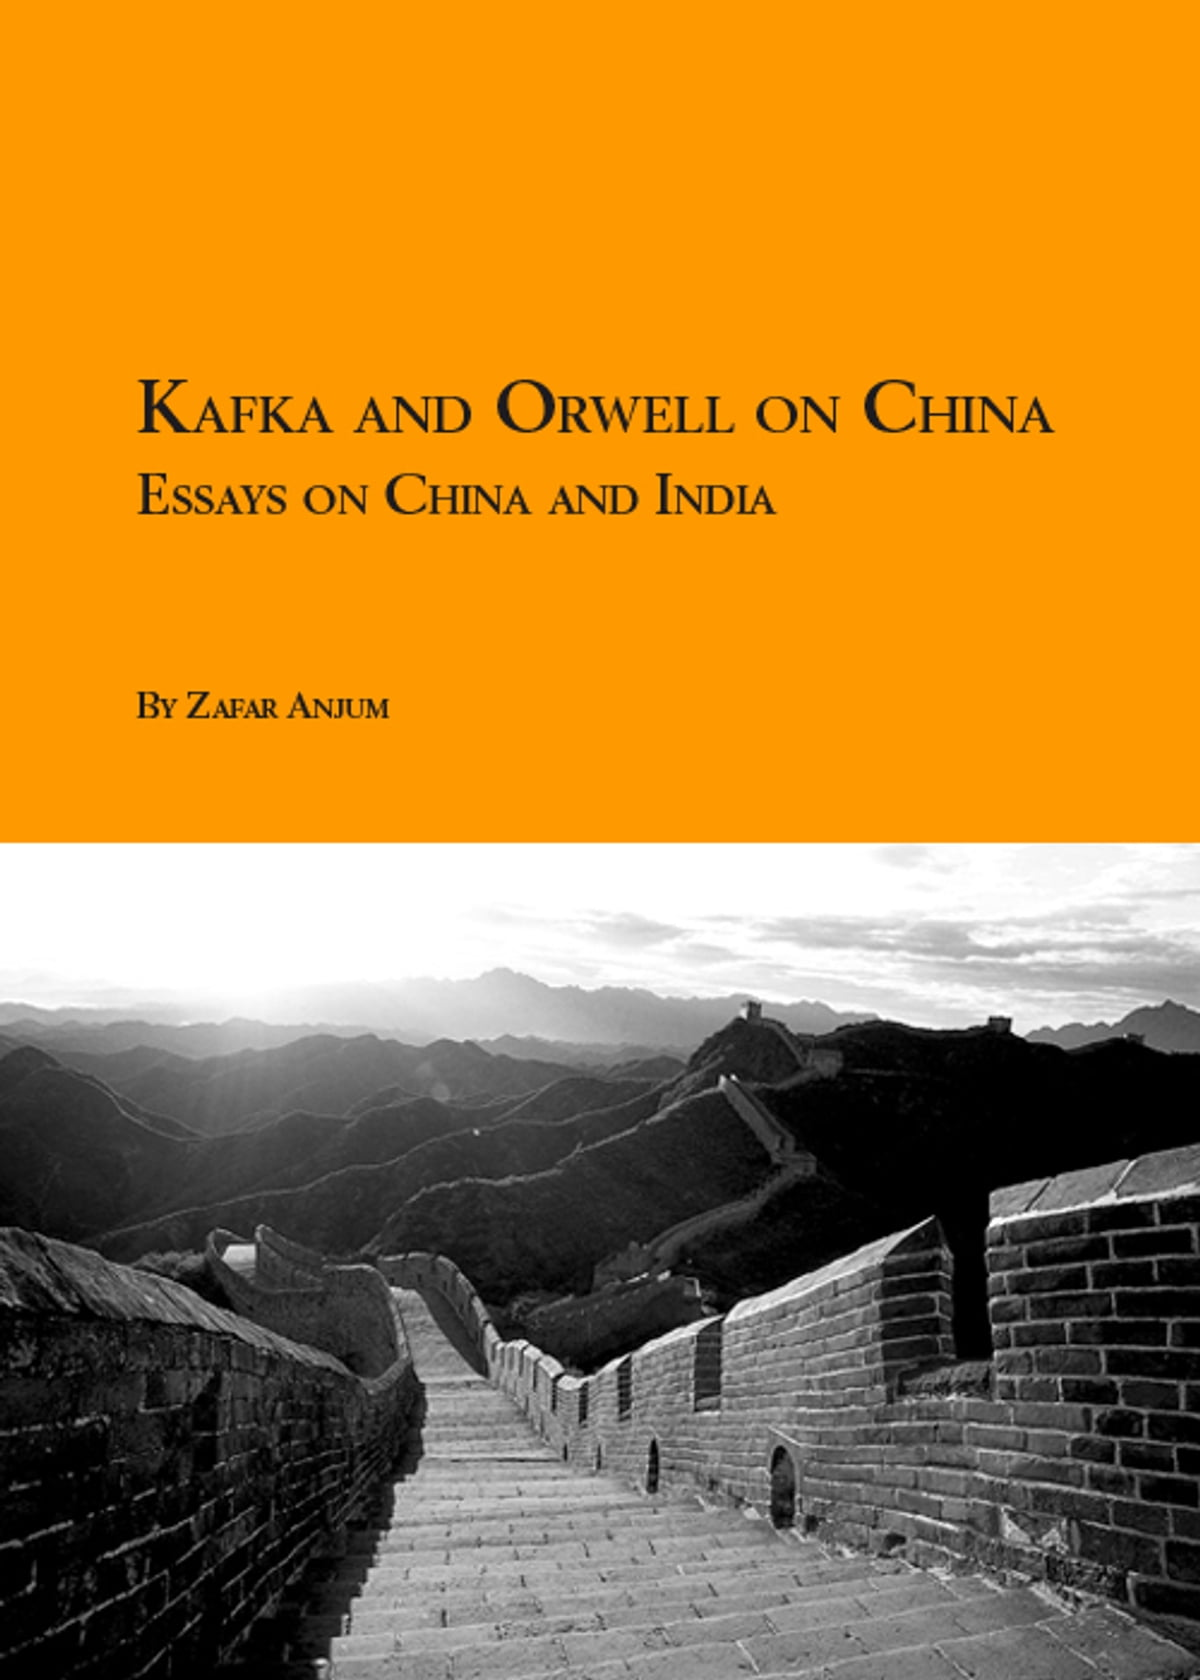 kafka and orwell on essays on and ebook by kafka and orwell on essays on and ebook by zafar anjum 9789810888022 kobo